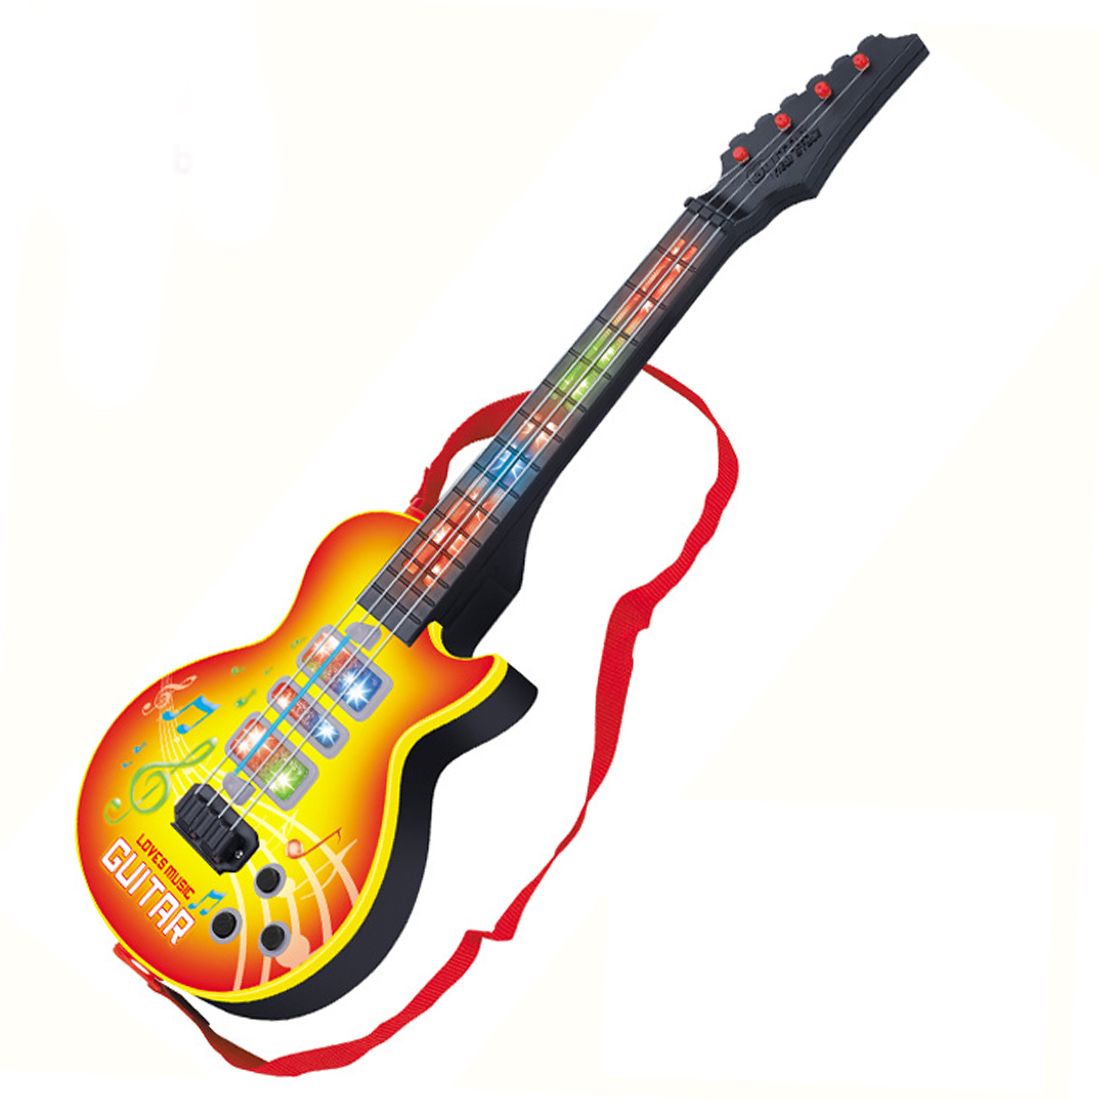 Hiqh-Quality-4-Strings-Music-Electric-Guitar-Kids-Musical-Instruments-Educational-Toys-For-Children-juguetes-As-New-Year-Gift-2